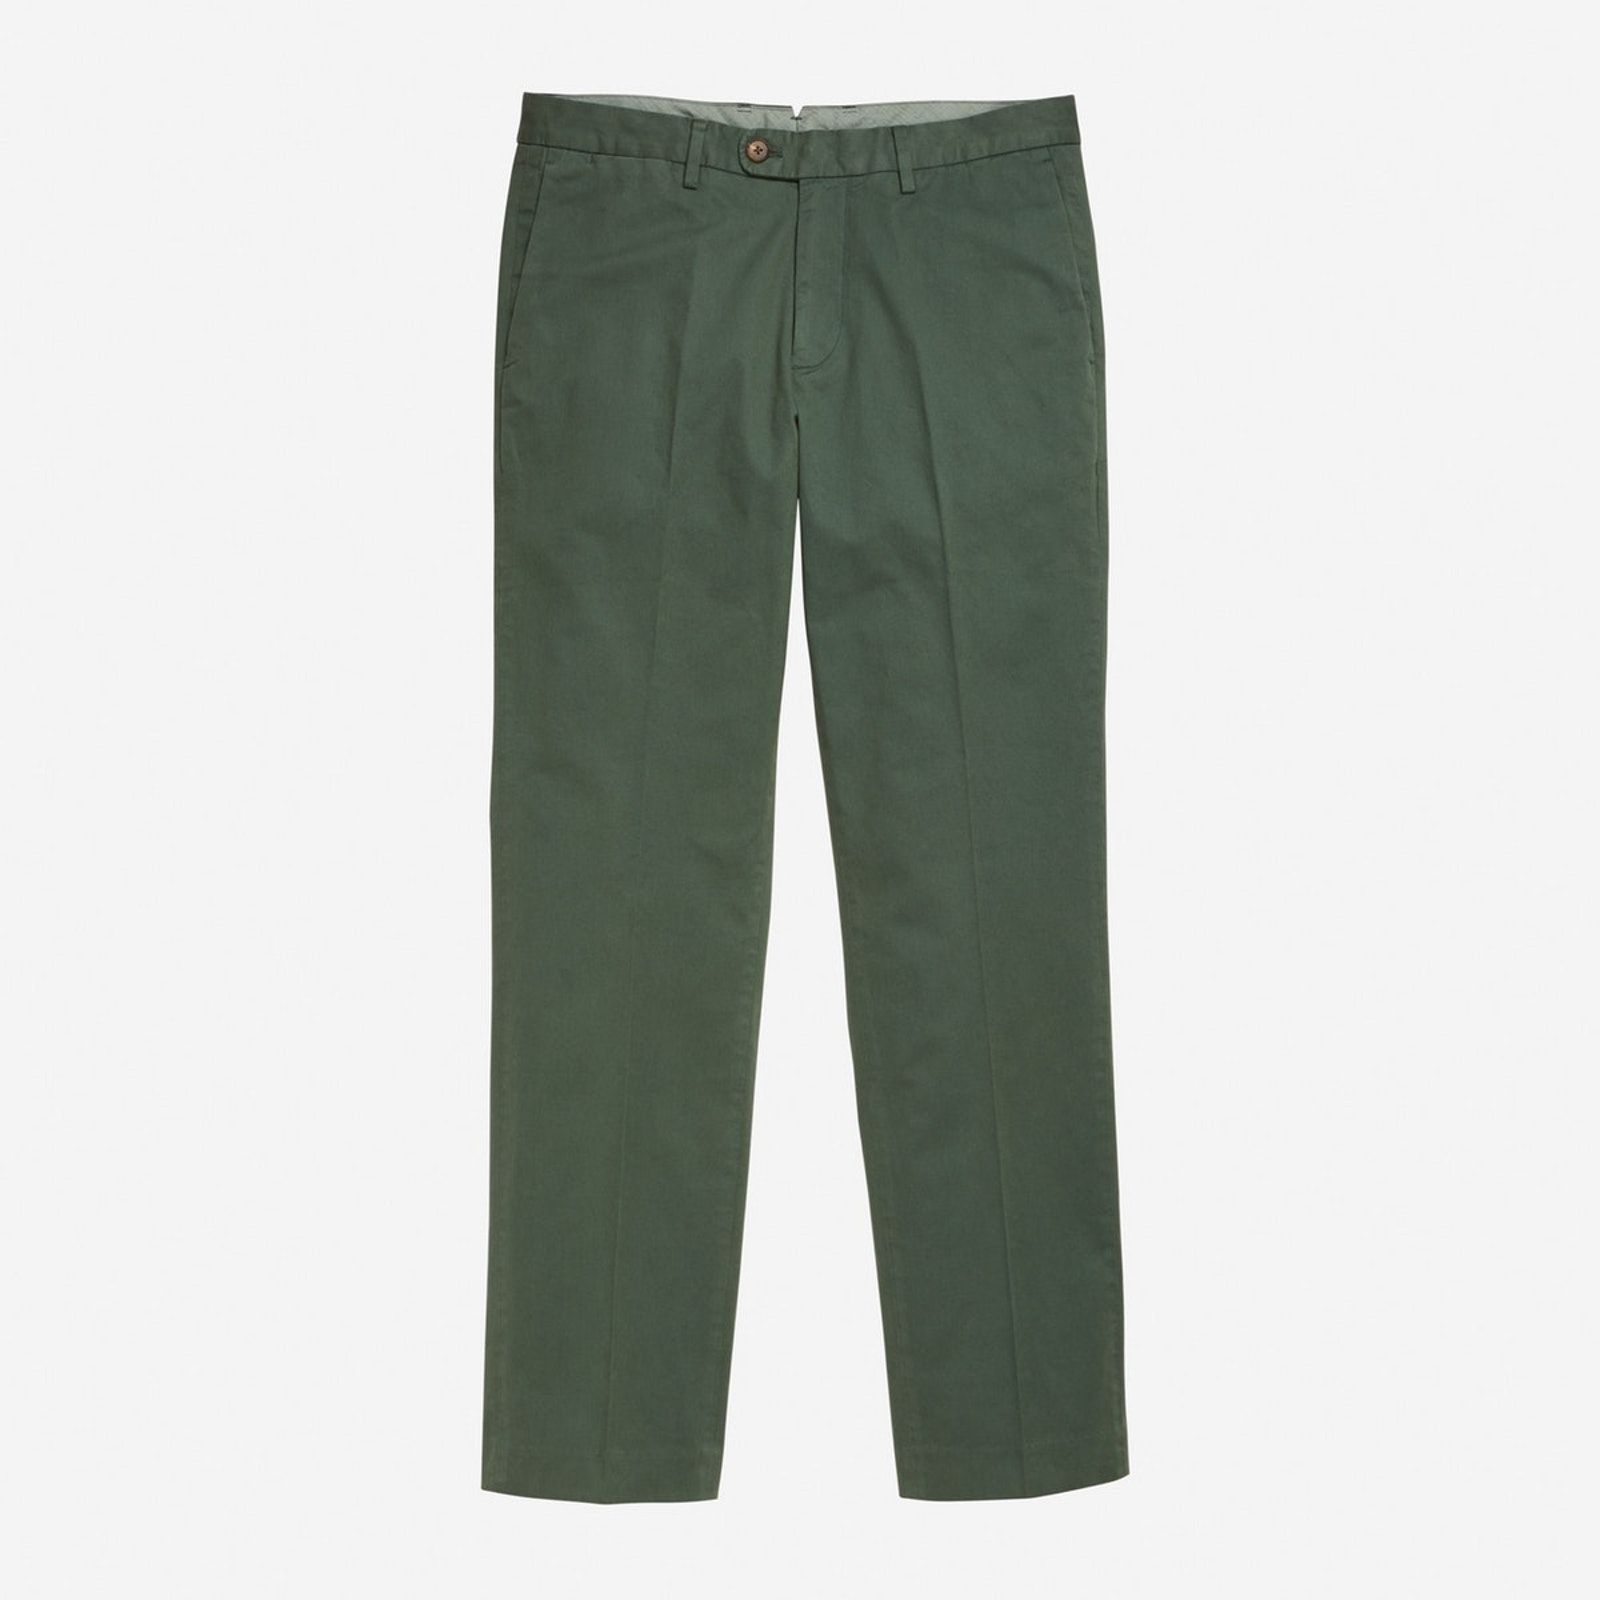 Pants_Premium_Chino_18381_GRR92_category.jpg